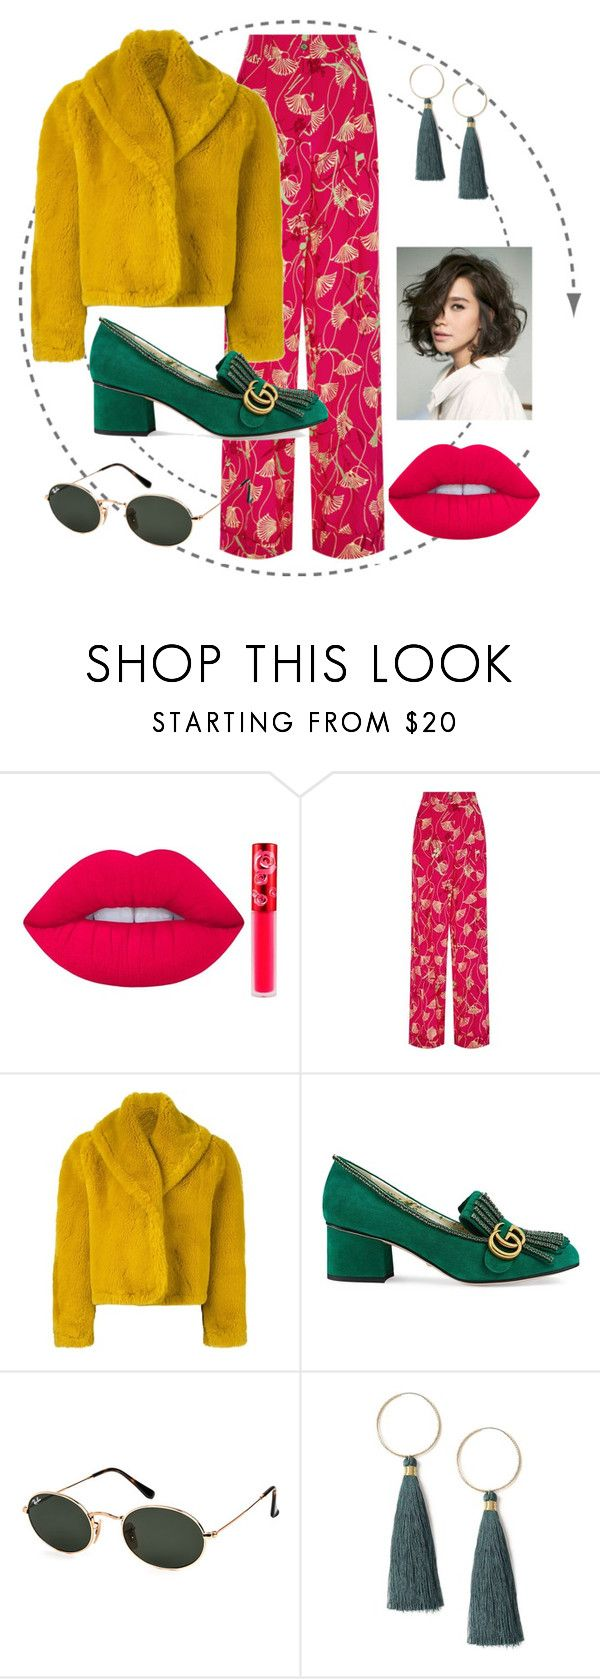 """bright"" by emilyhegland ❤ liked on Polyvore featuring Lime Crime, Valentino, Jean-Paul Gaultier, Gucci, Ray-Ban and Miss Selfridge"